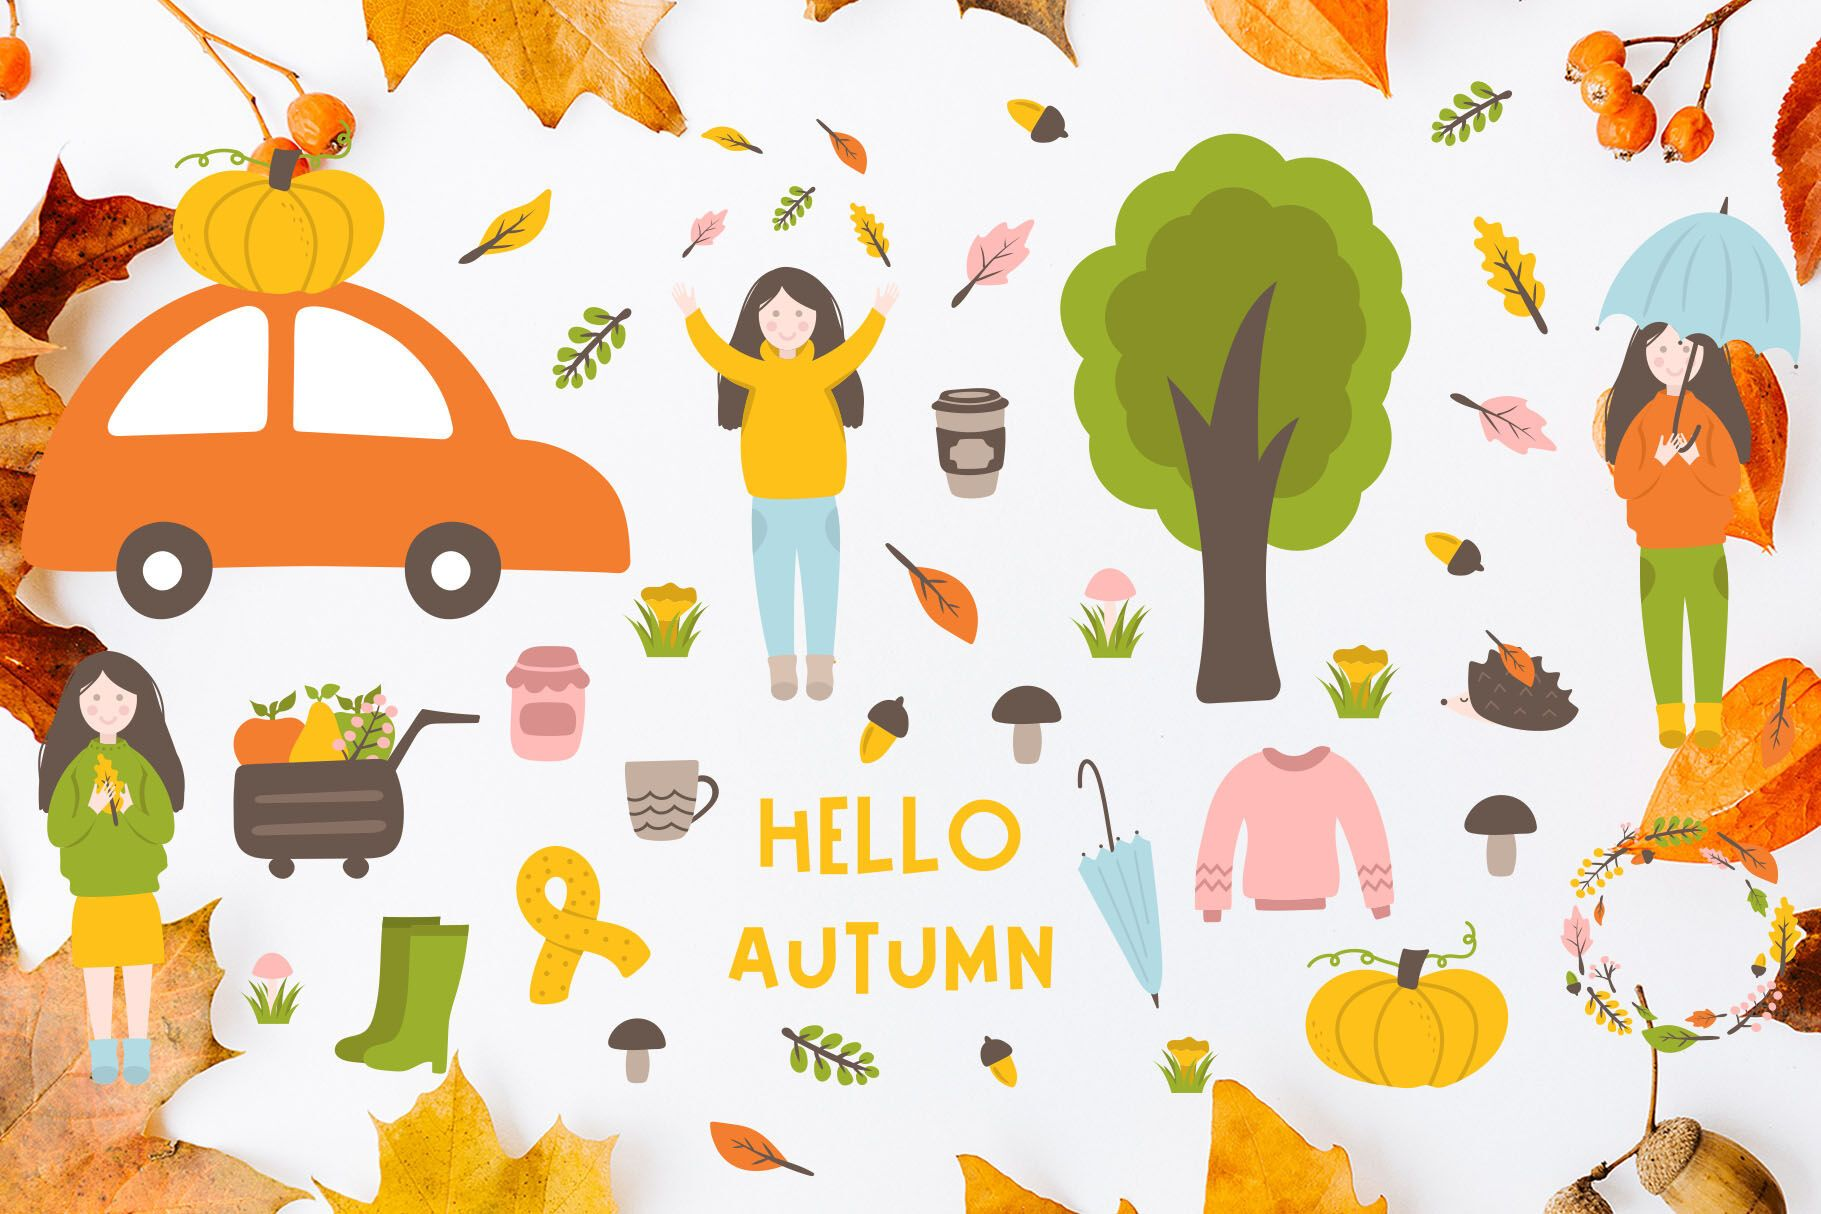 Pin by ussdy on Icons Illustration Drawings Hello autumn